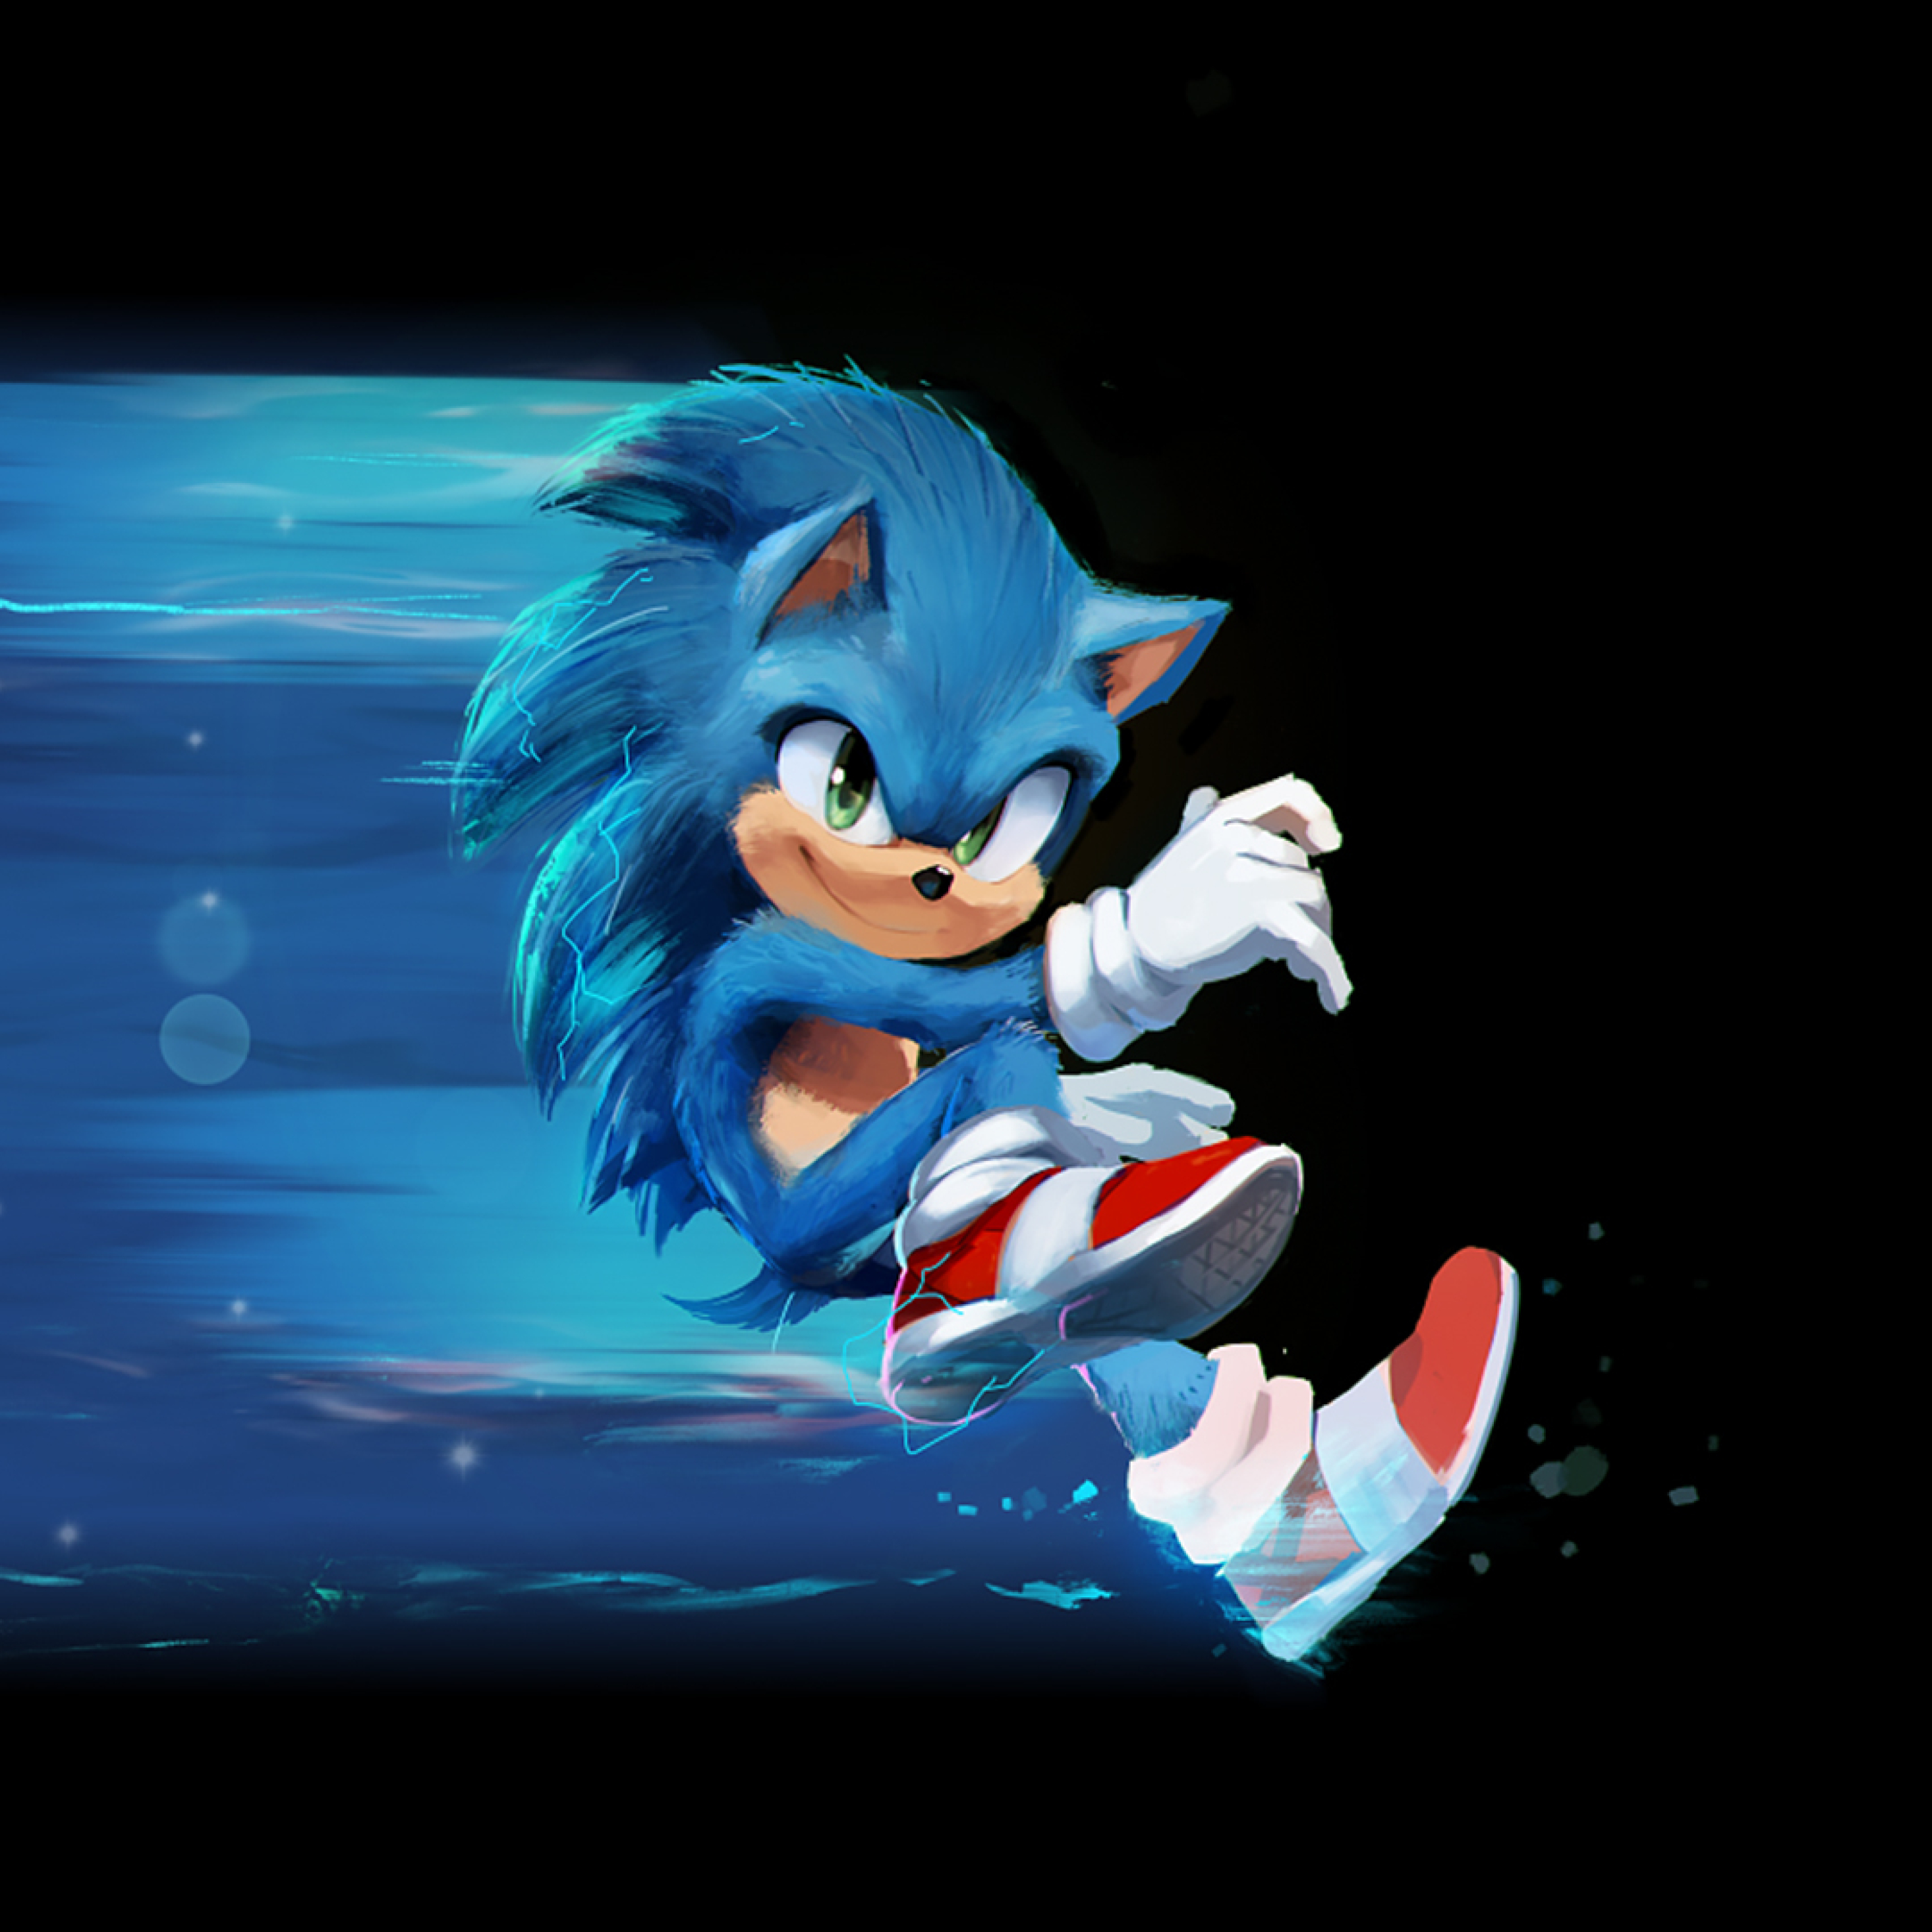 2932x2932 Sonic The Hedgehog Artwork Ipad Pro Retina Display Wallpaper Hd Movies 4k Wallpapers Images Photos And Background